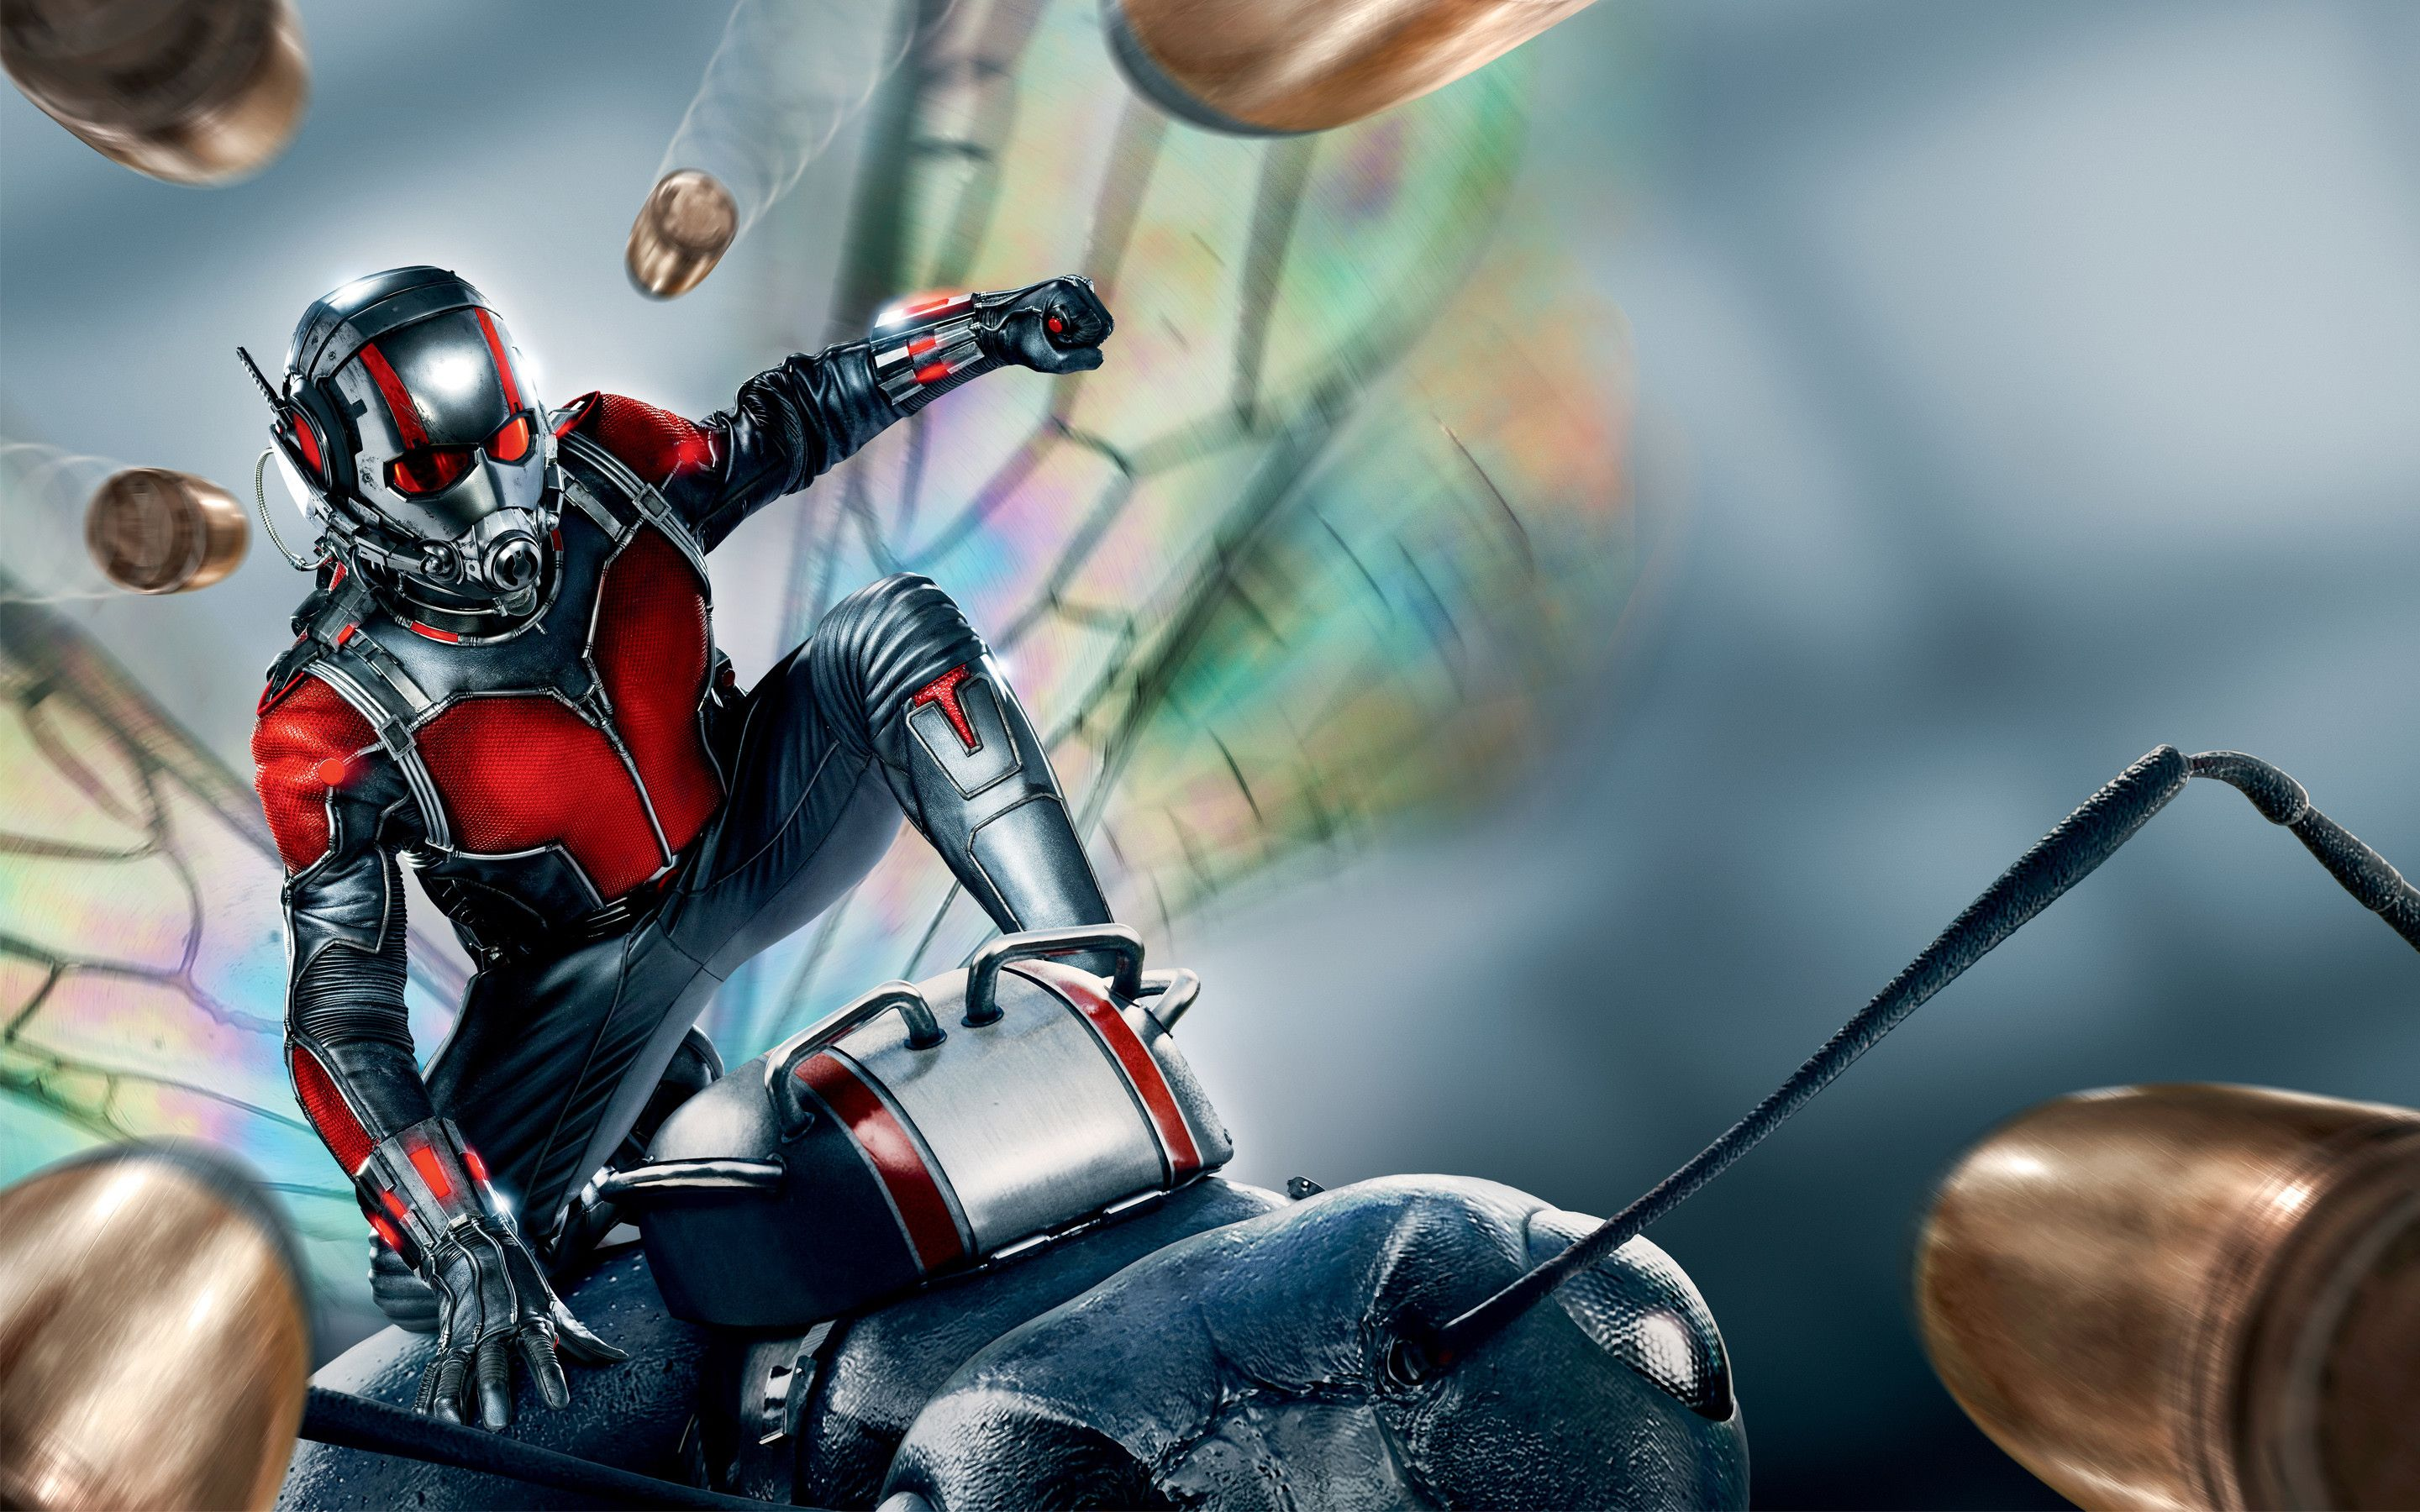 Ant Man Full Movie Free 1080p Backgrounds Pg Music The Pianist Series 64 Bit